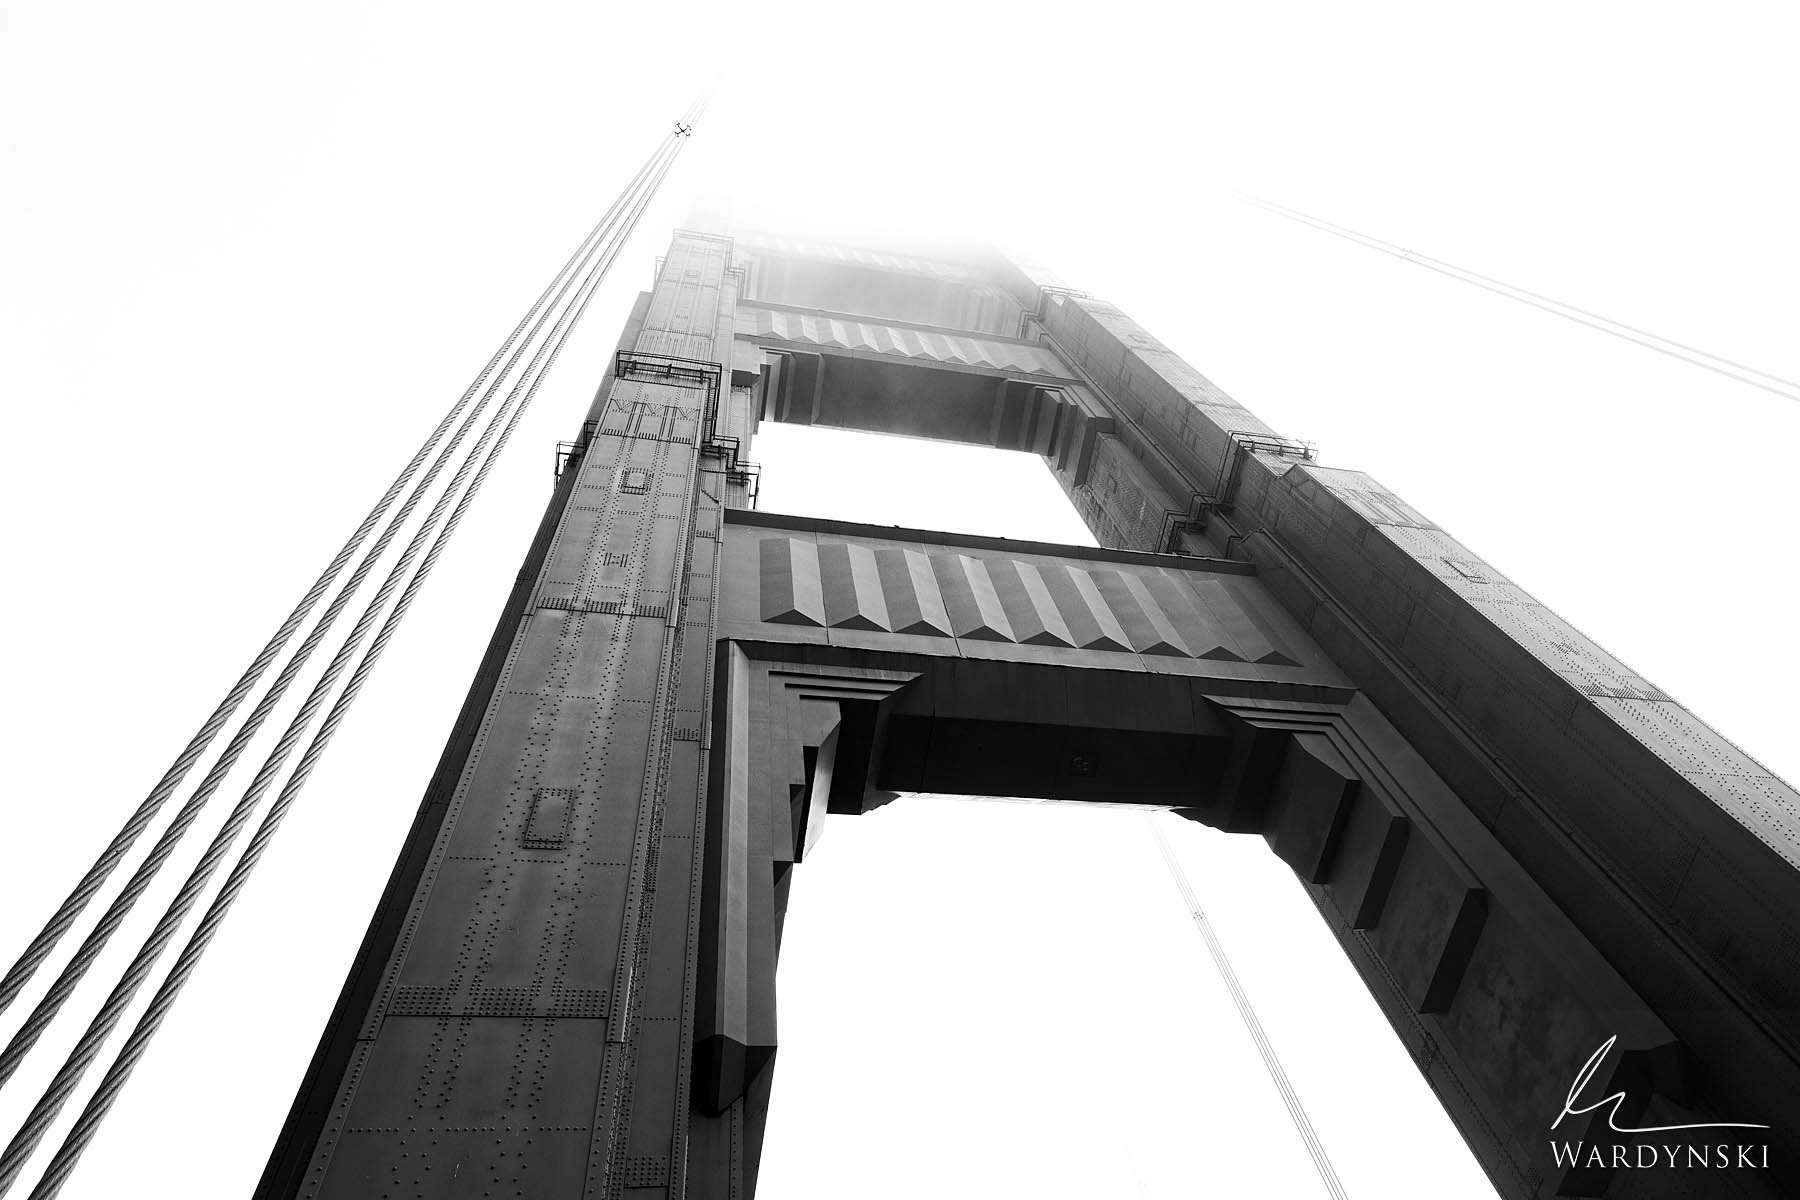 Black & White Fine Art Print | Limited Edition of 50 (Also available in color) The magnificent Golden Gate Bridge is the icon...